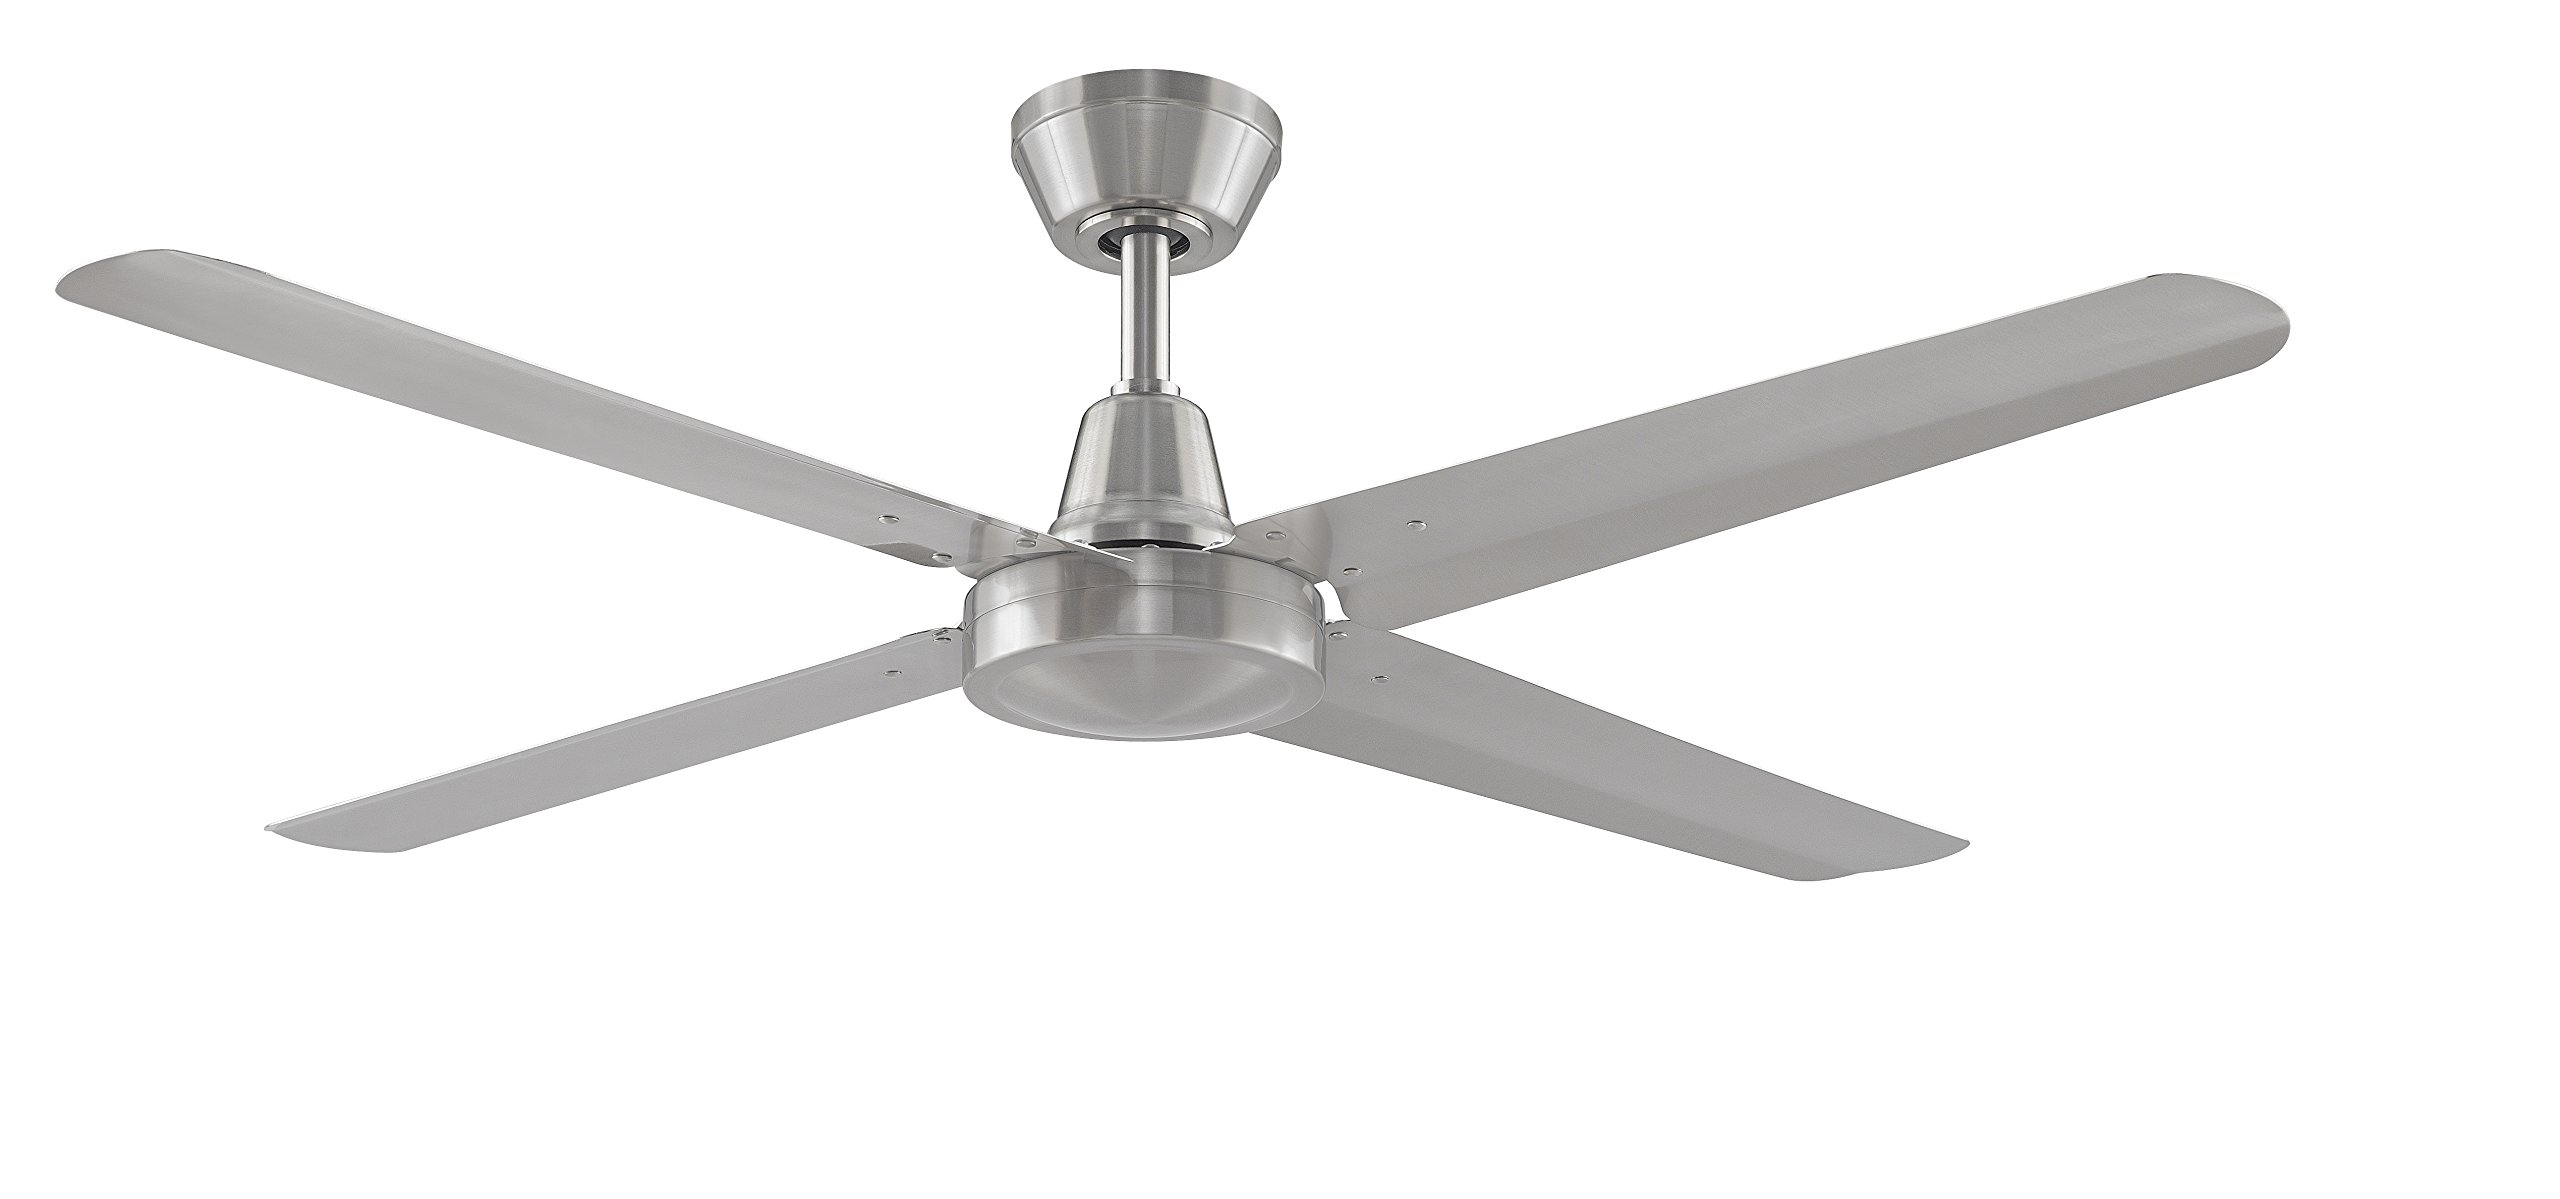 Fanimation Ascension - 54 inch - Brushed Nickel with Brushed Nickel Blades and Wall Control - FP6717BN